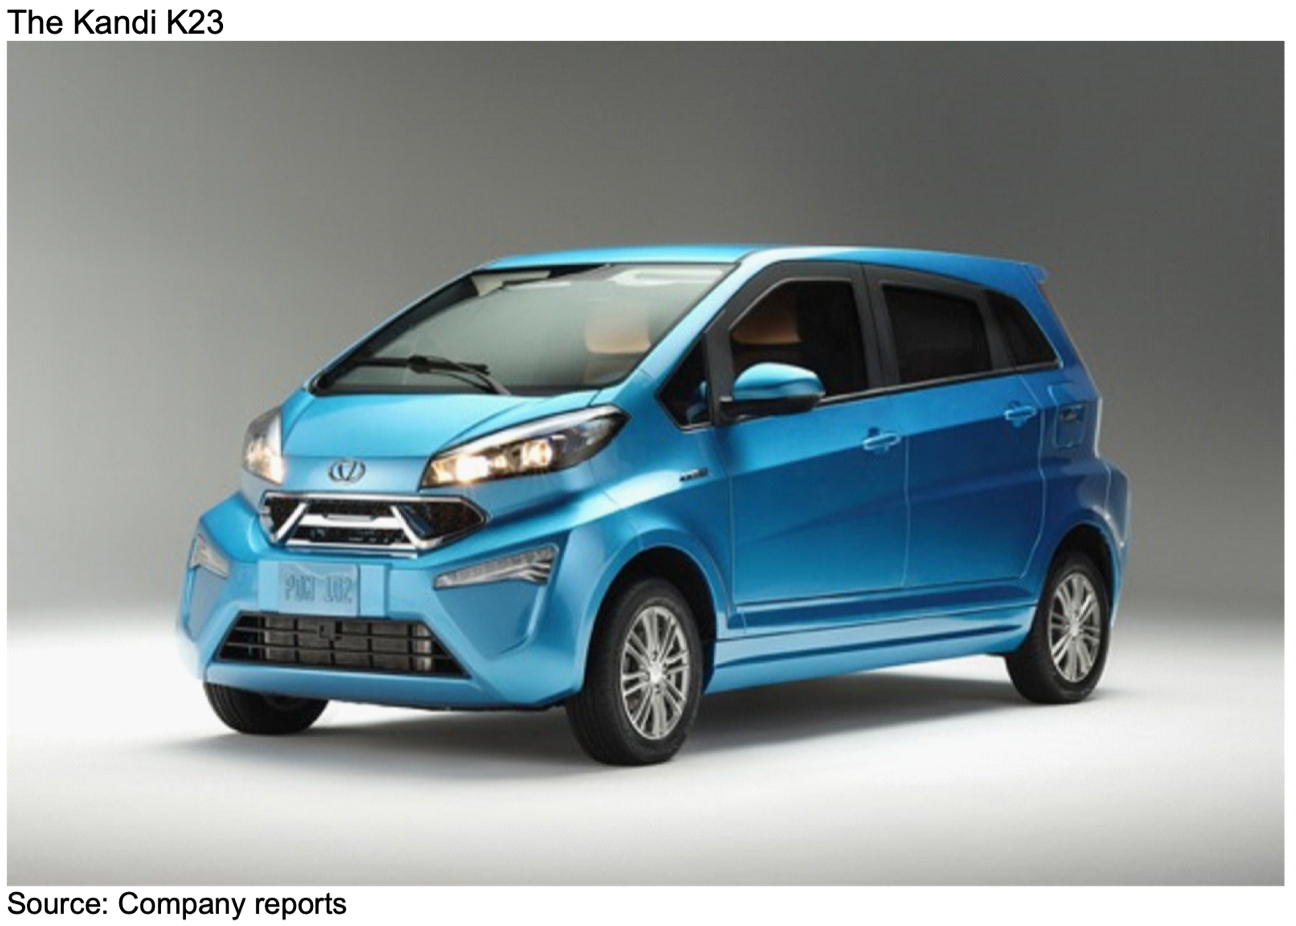 KNDI: New Electric Car Models, Battery Swap Model & Ride Share Focus Create Opportunities For Growth